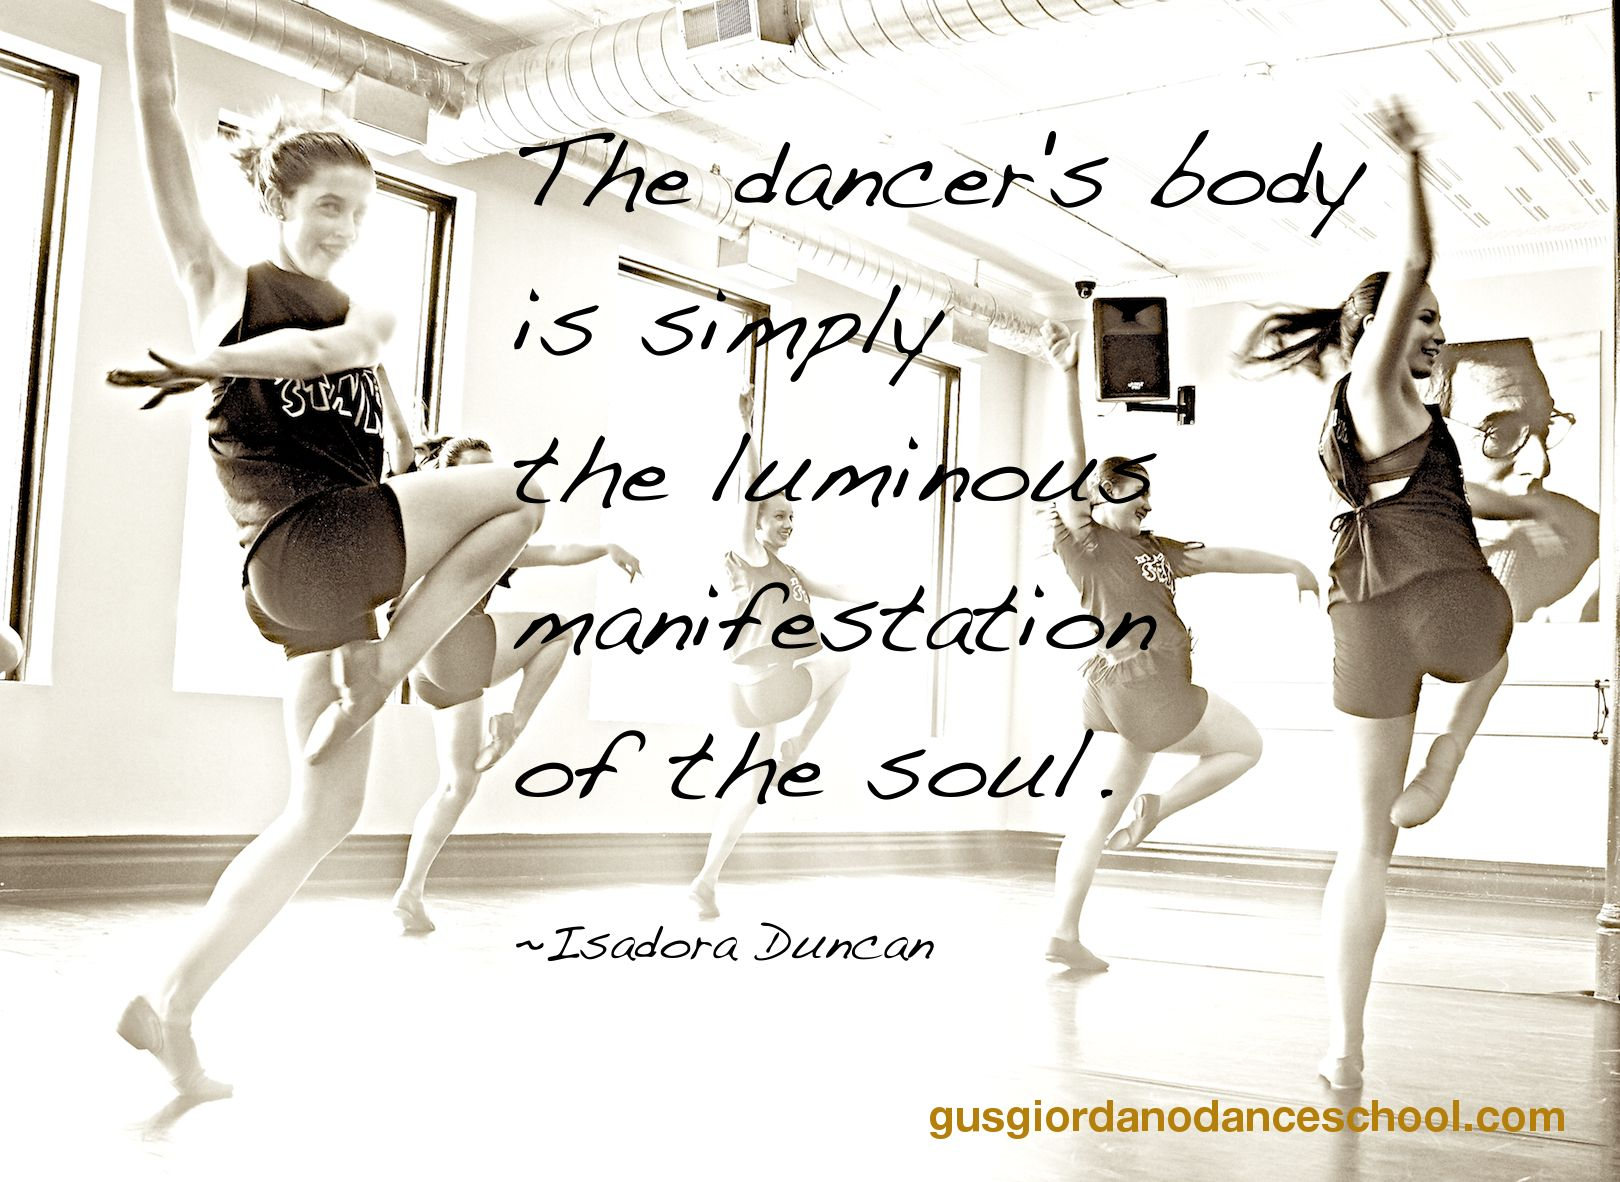 Isadora Duncan Quote Dancers From Gus Giordano Dance School Isadora Duncan Dancers Body Dance Life